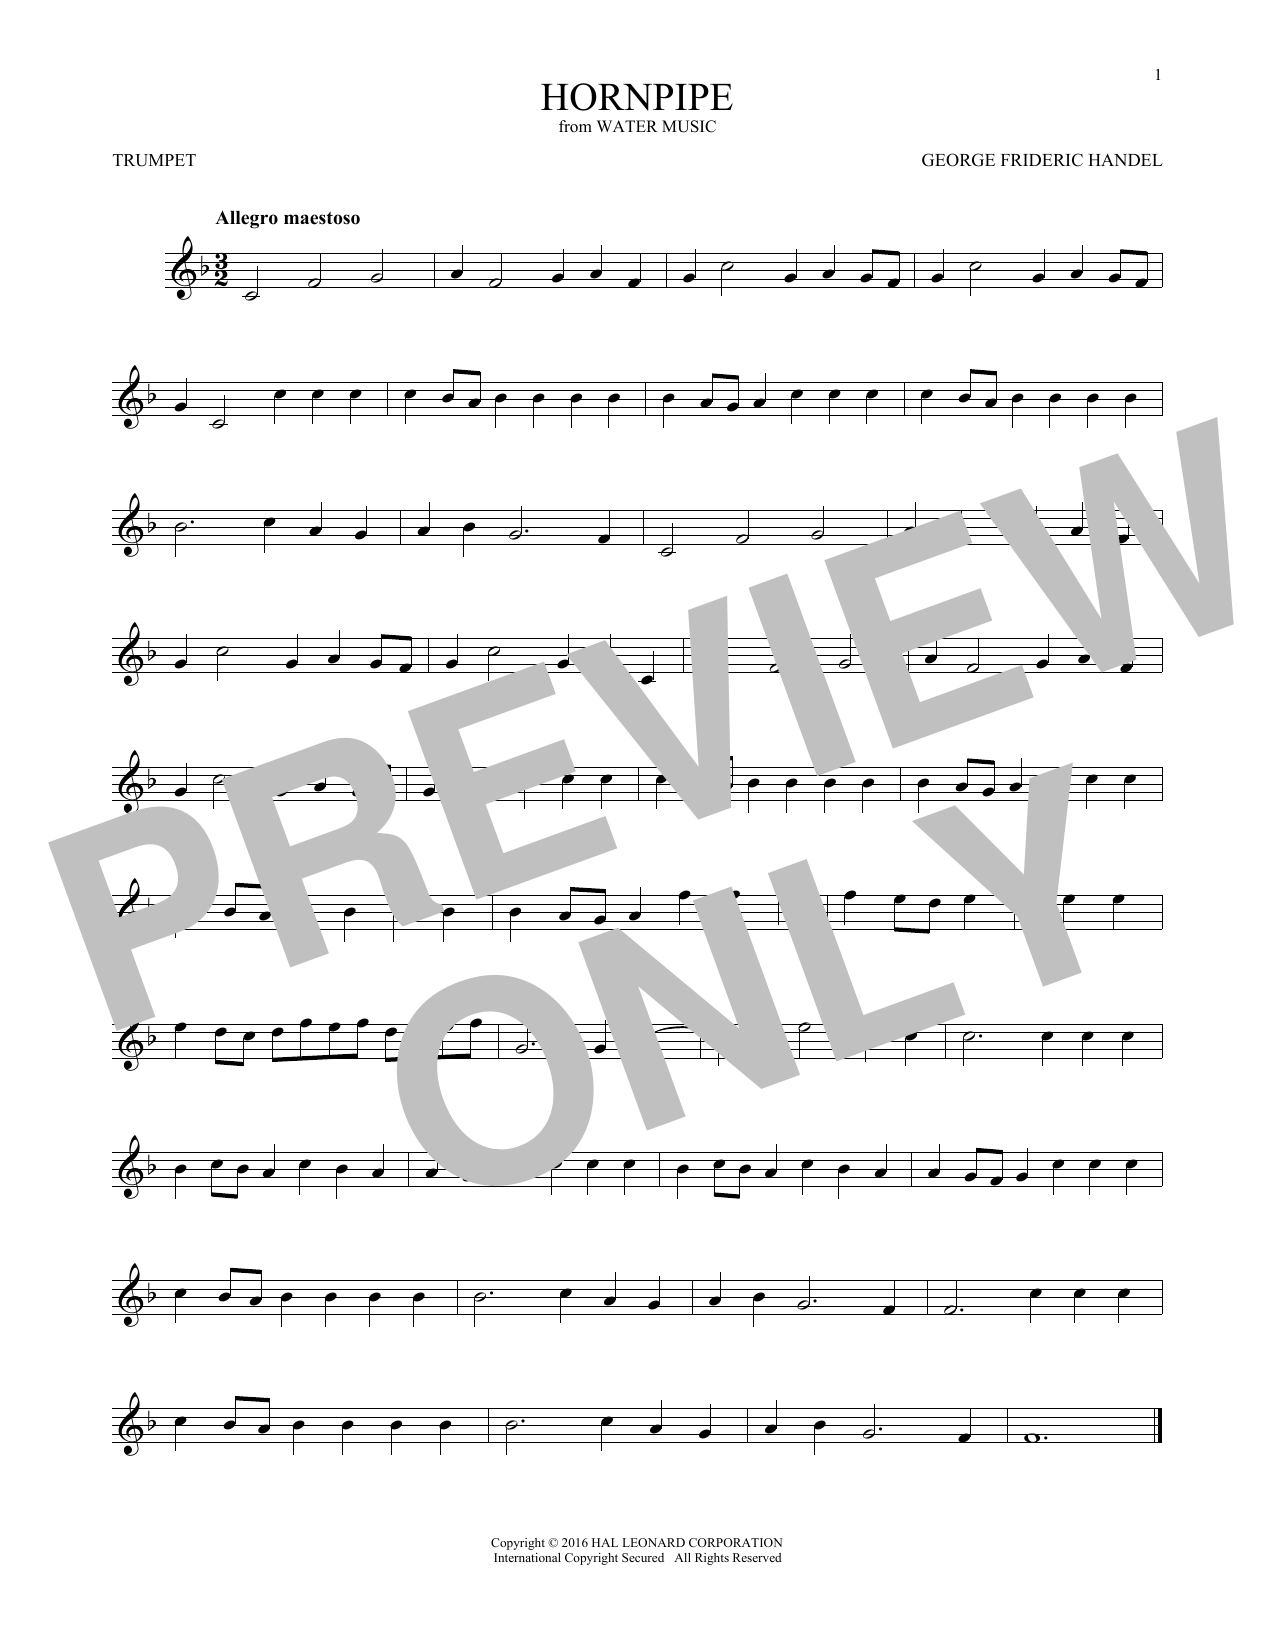 George Frideric Handel Hornpipe sheet music notes and chords. Download Printable PDF.